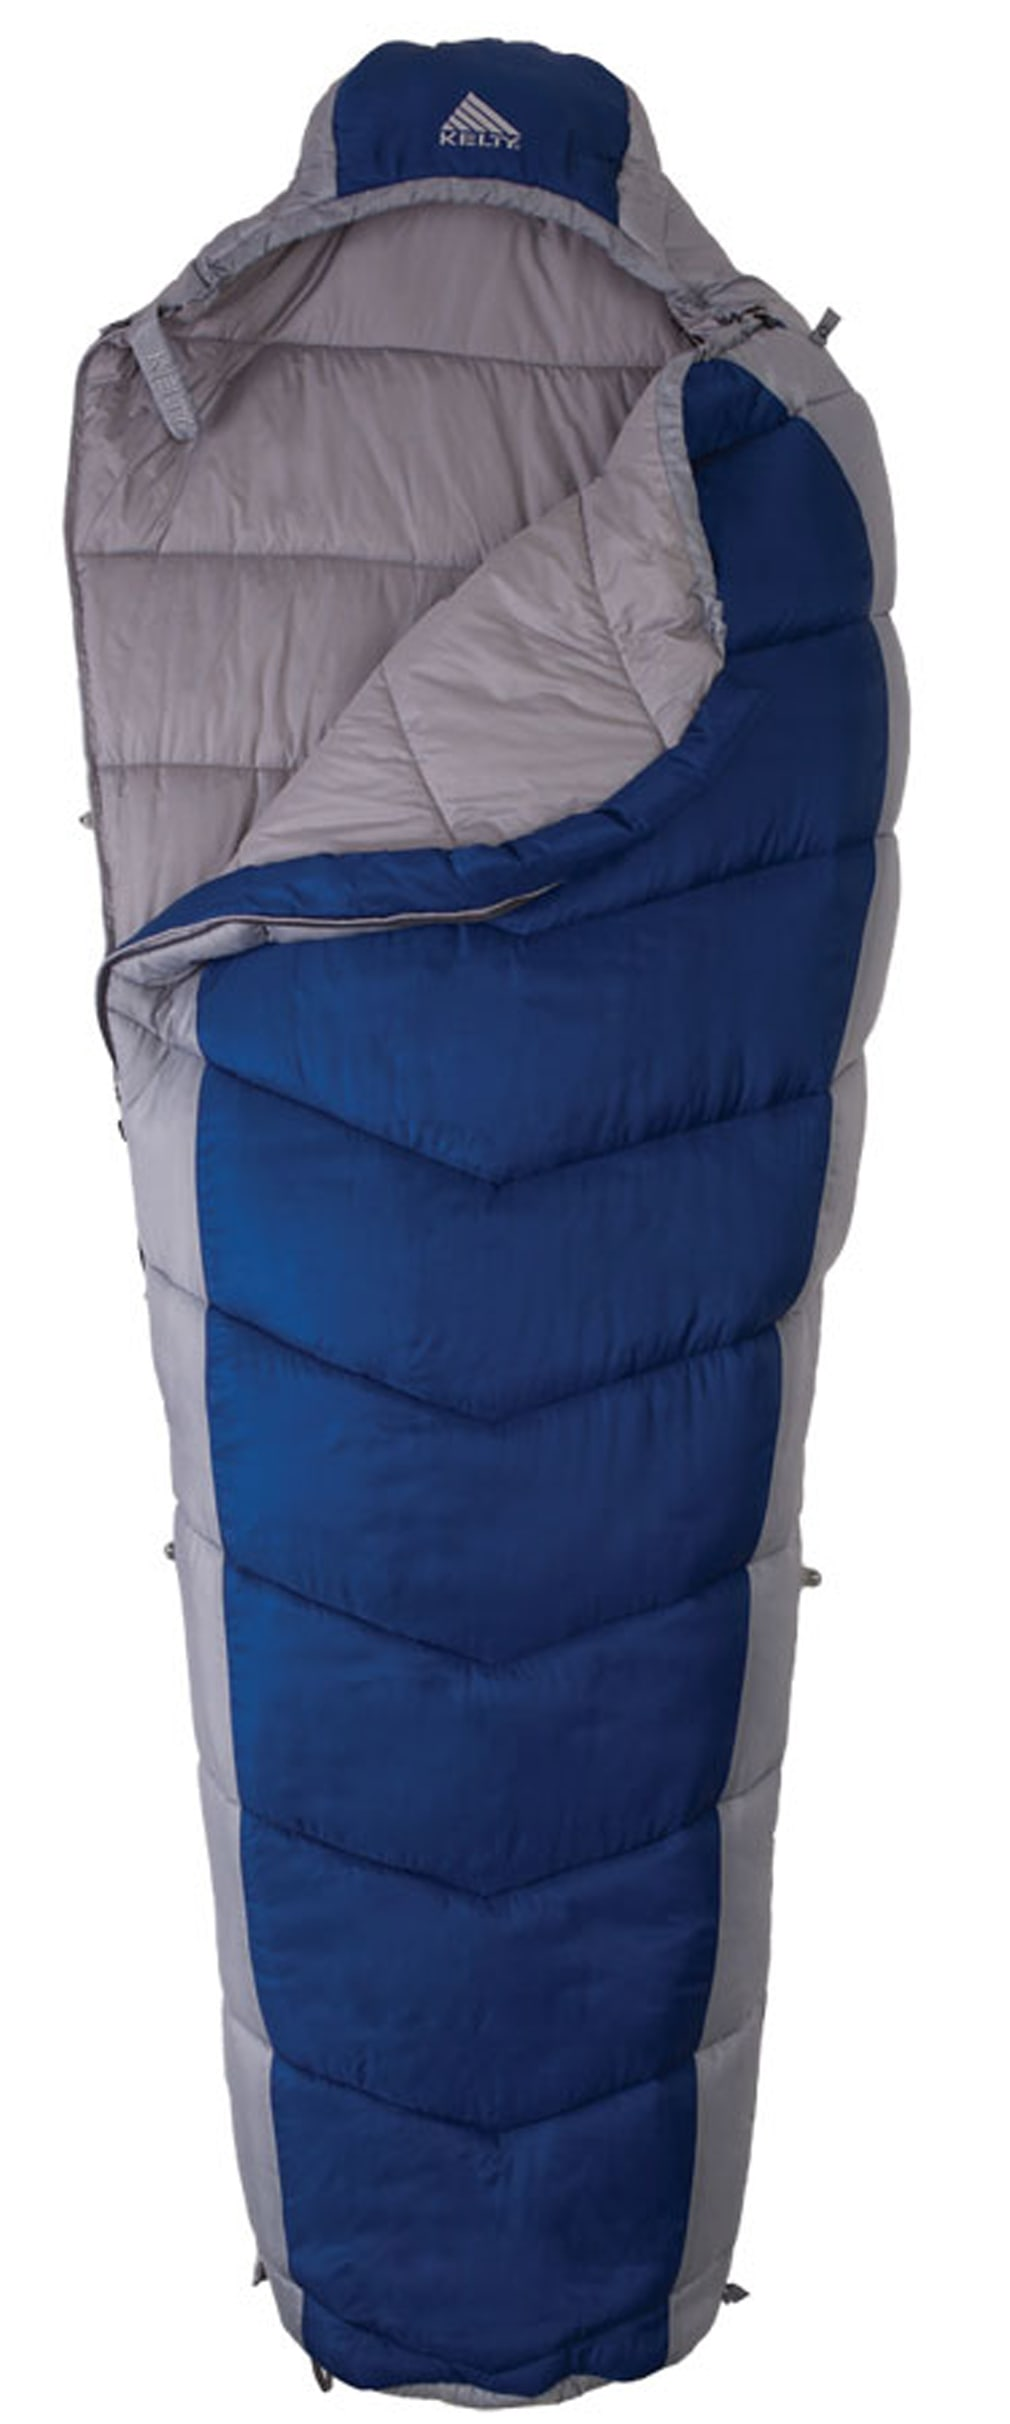 Shop for Kelty Light Year XP 40 Degree Long Sleeping Bag